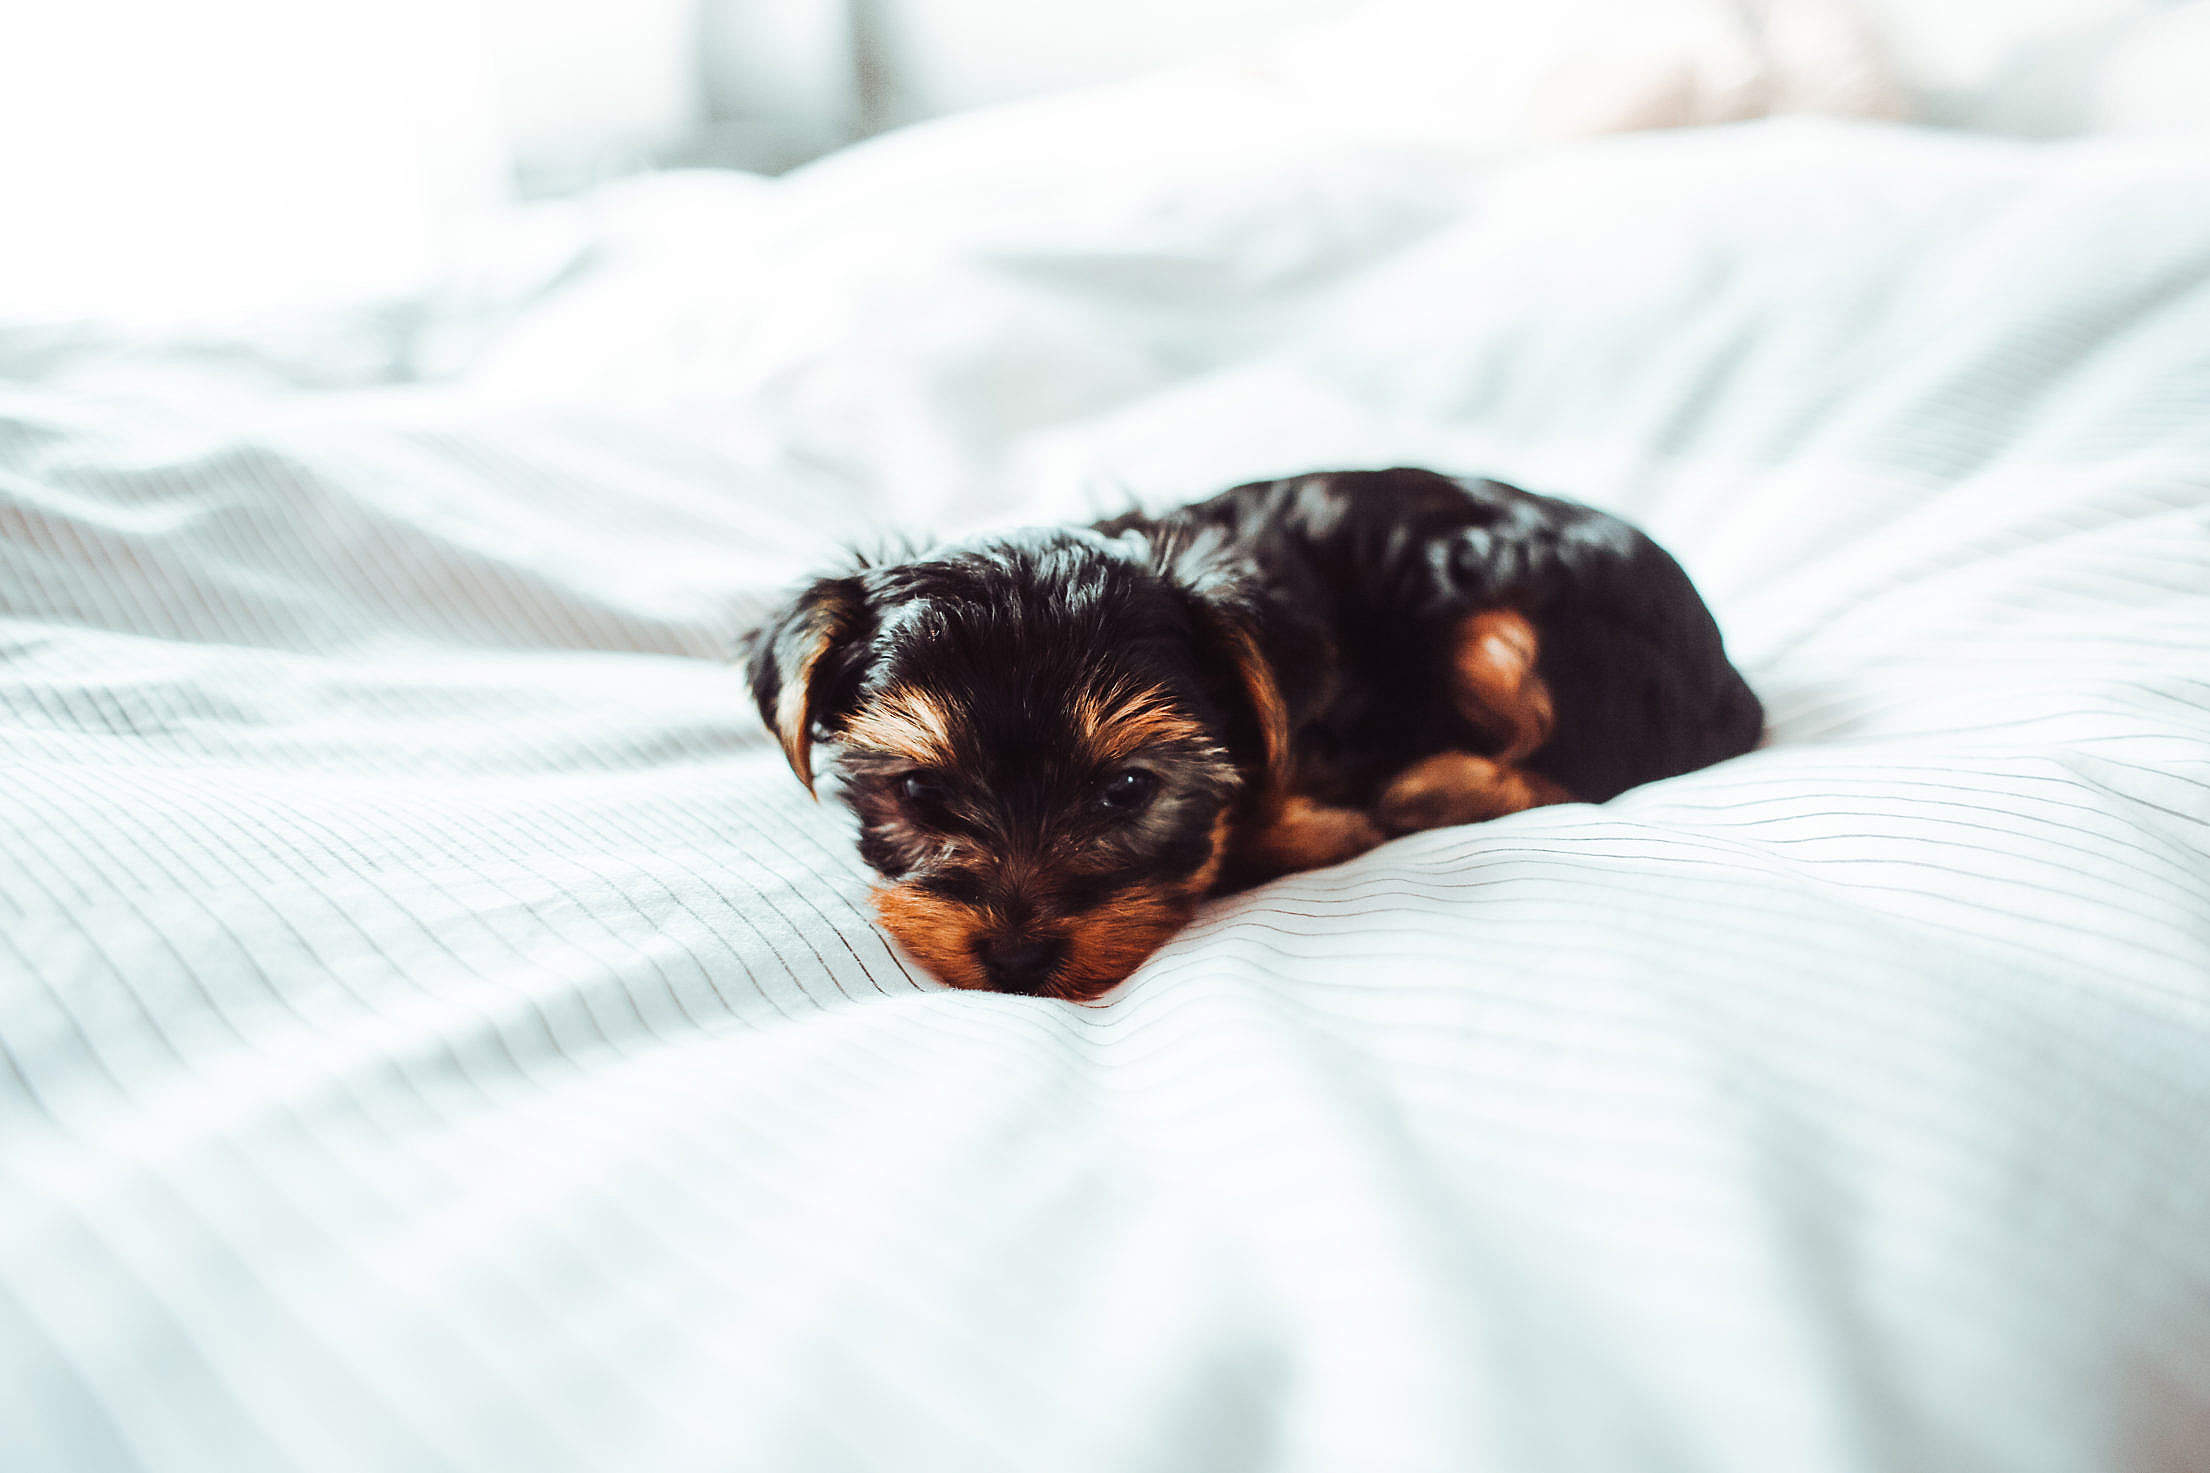 Cute Puppy in Bed Free Stock Photo